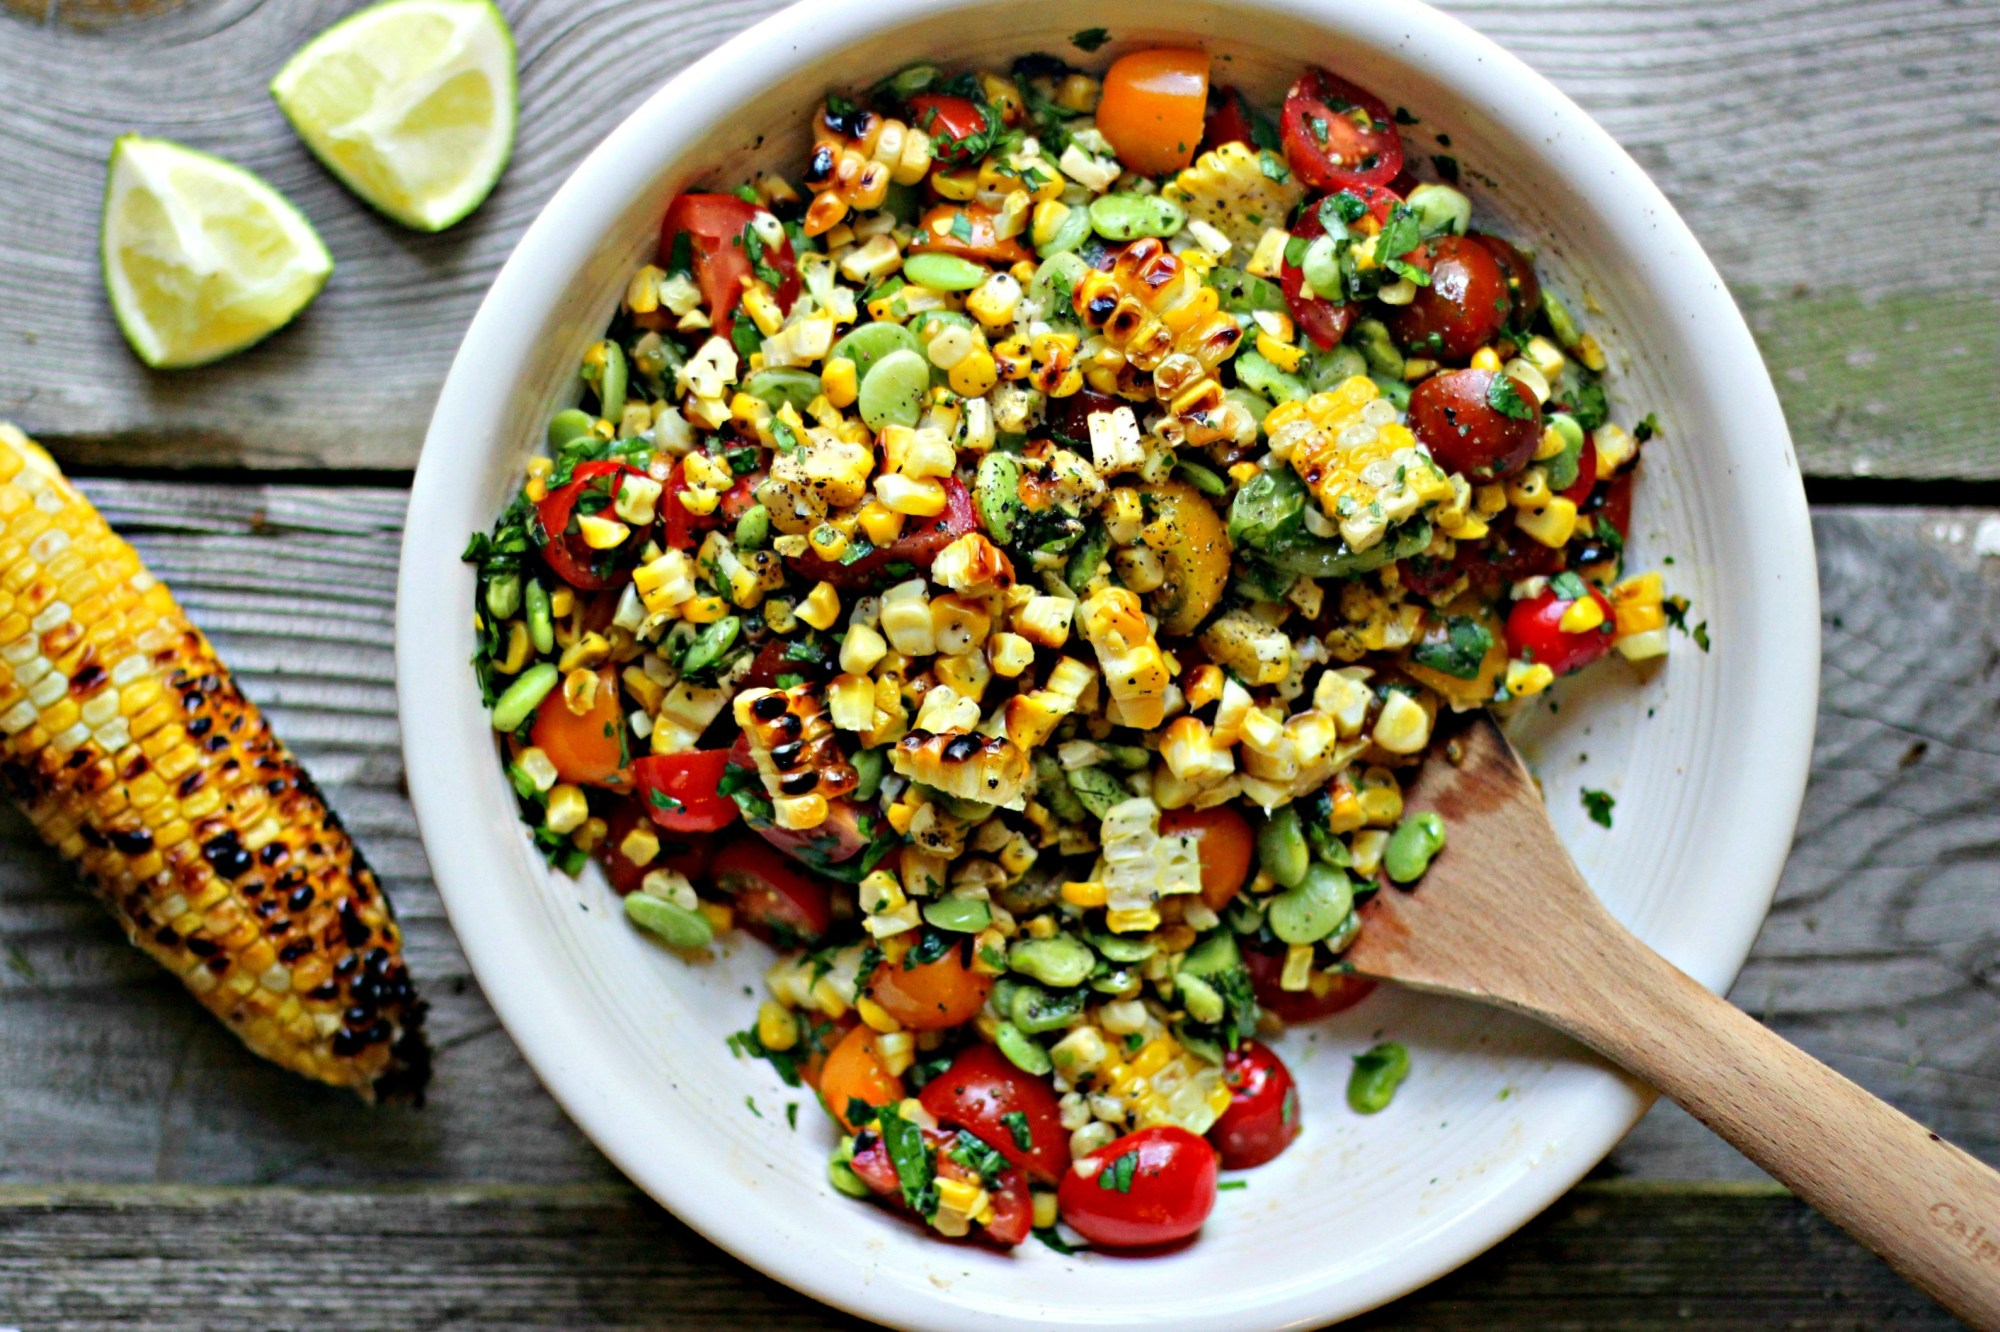 Easy Last Minute 4th of July Cookout Recipes; Pictured:  Summer Succotash with Grilled Corn  by The Gourmet RD